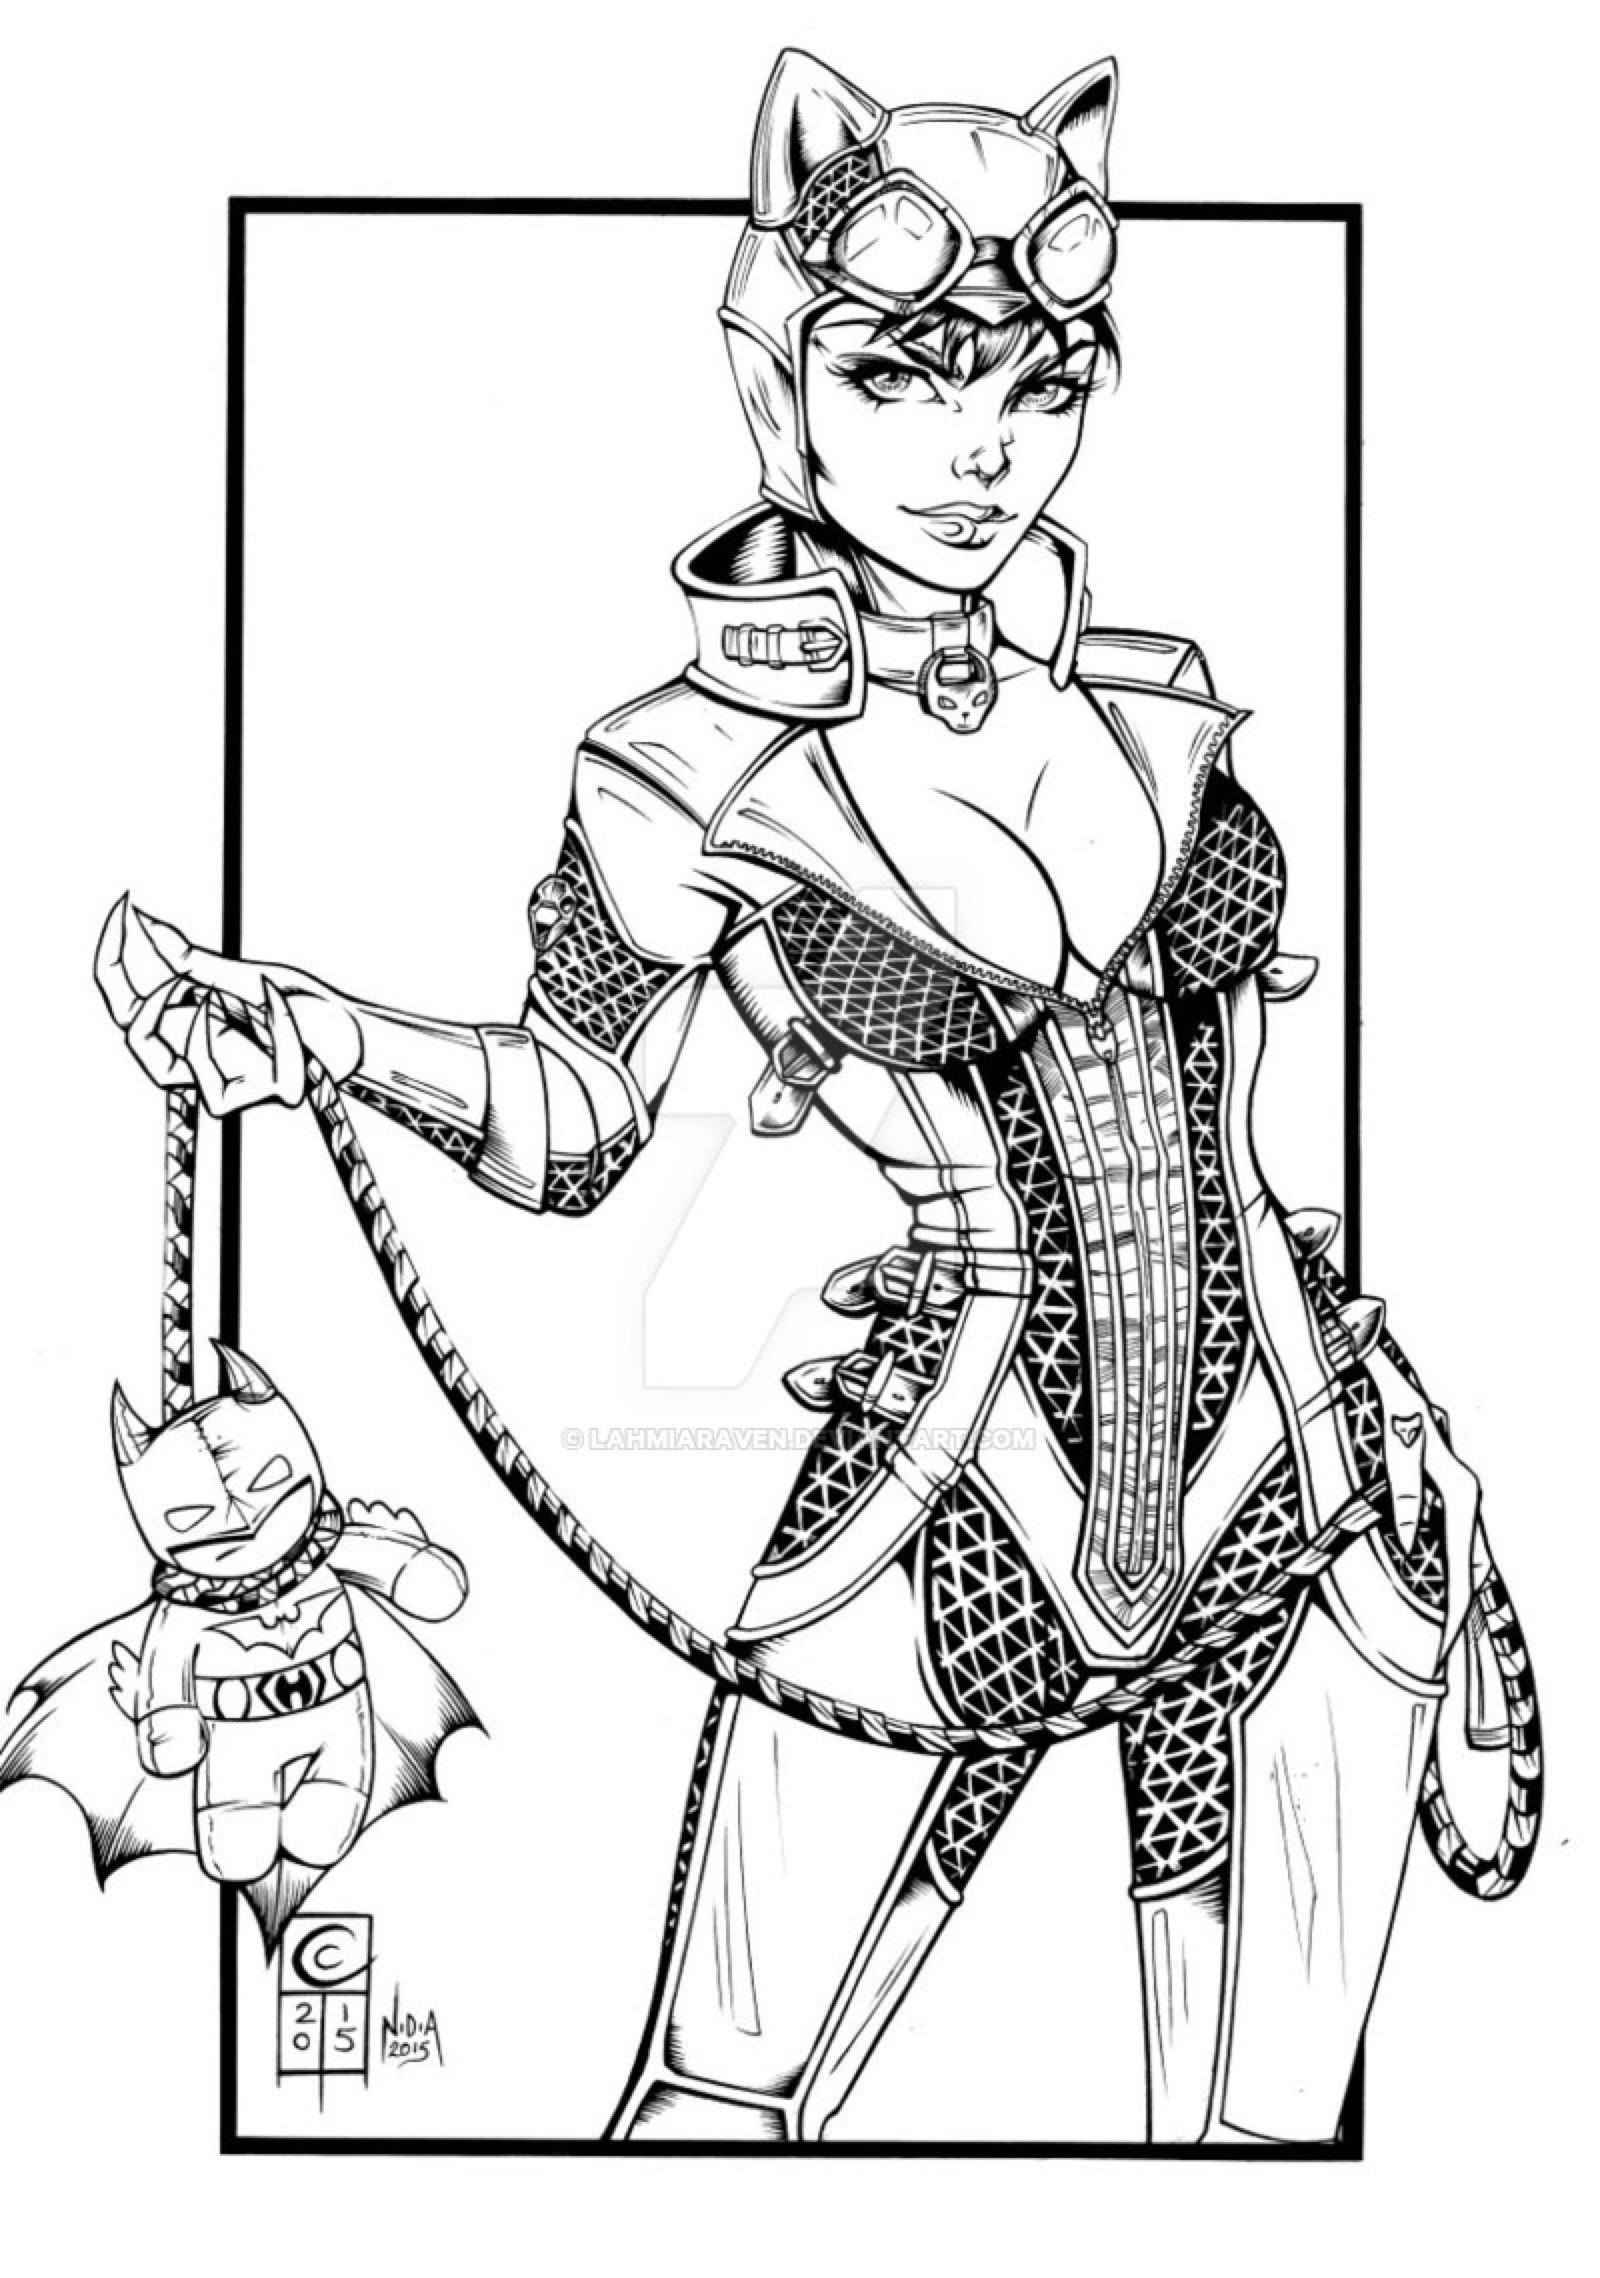 catwoman printable coloring pages catwoman coloring pages free printable catwoman coloring coloring printable pages catwoman